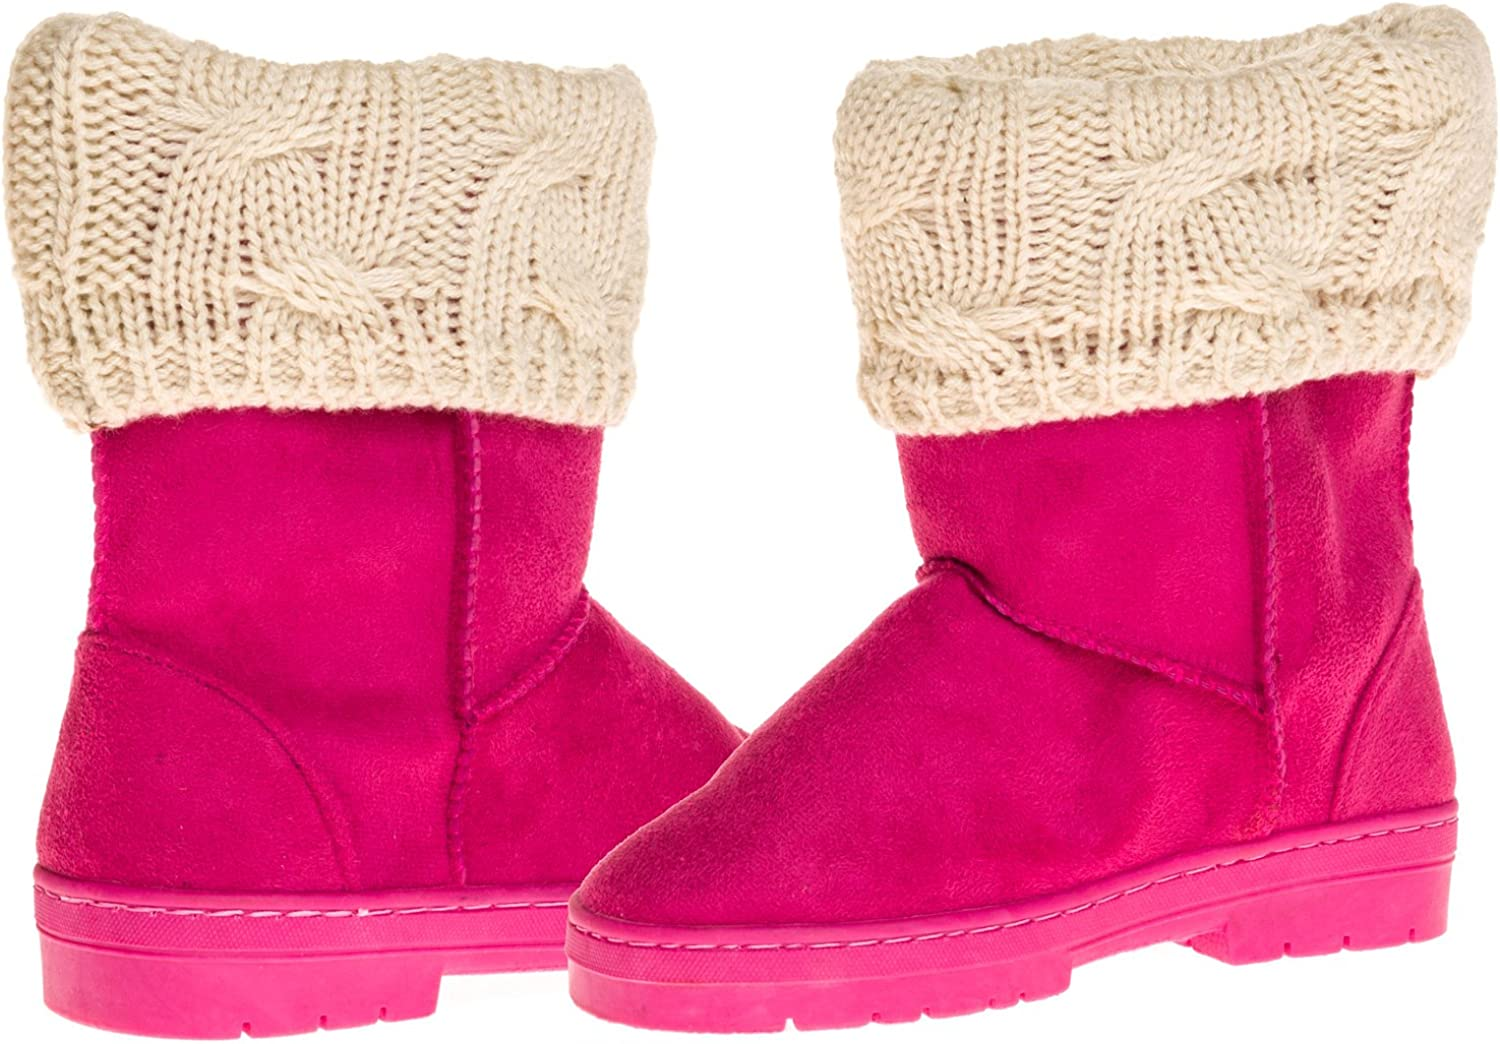 Sara Z Girls Suede Lug Sole Winter Boot with Fold-Over Sweater Cuff See More Colors /& Sizes